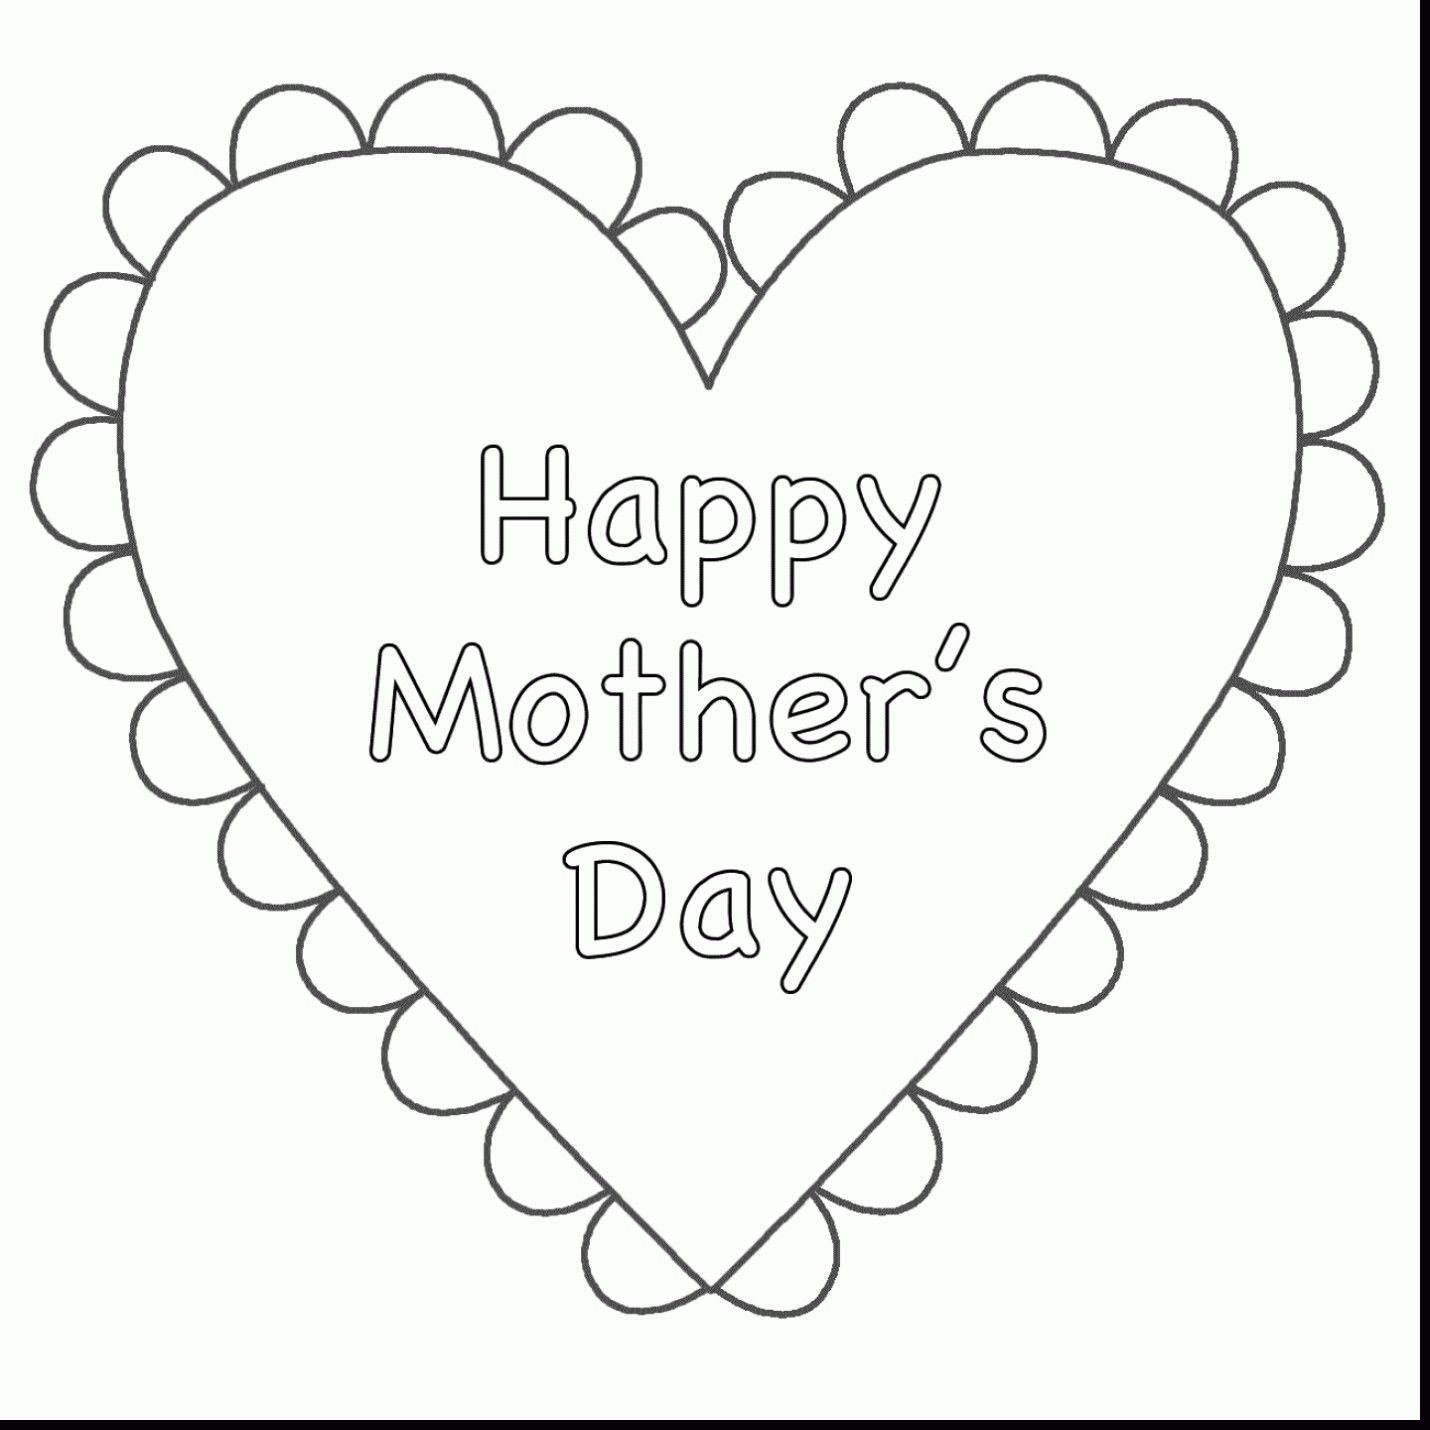 1430x1430 I Love You Mommy And Daddy Coloring Pages Copy New Coloring I Love